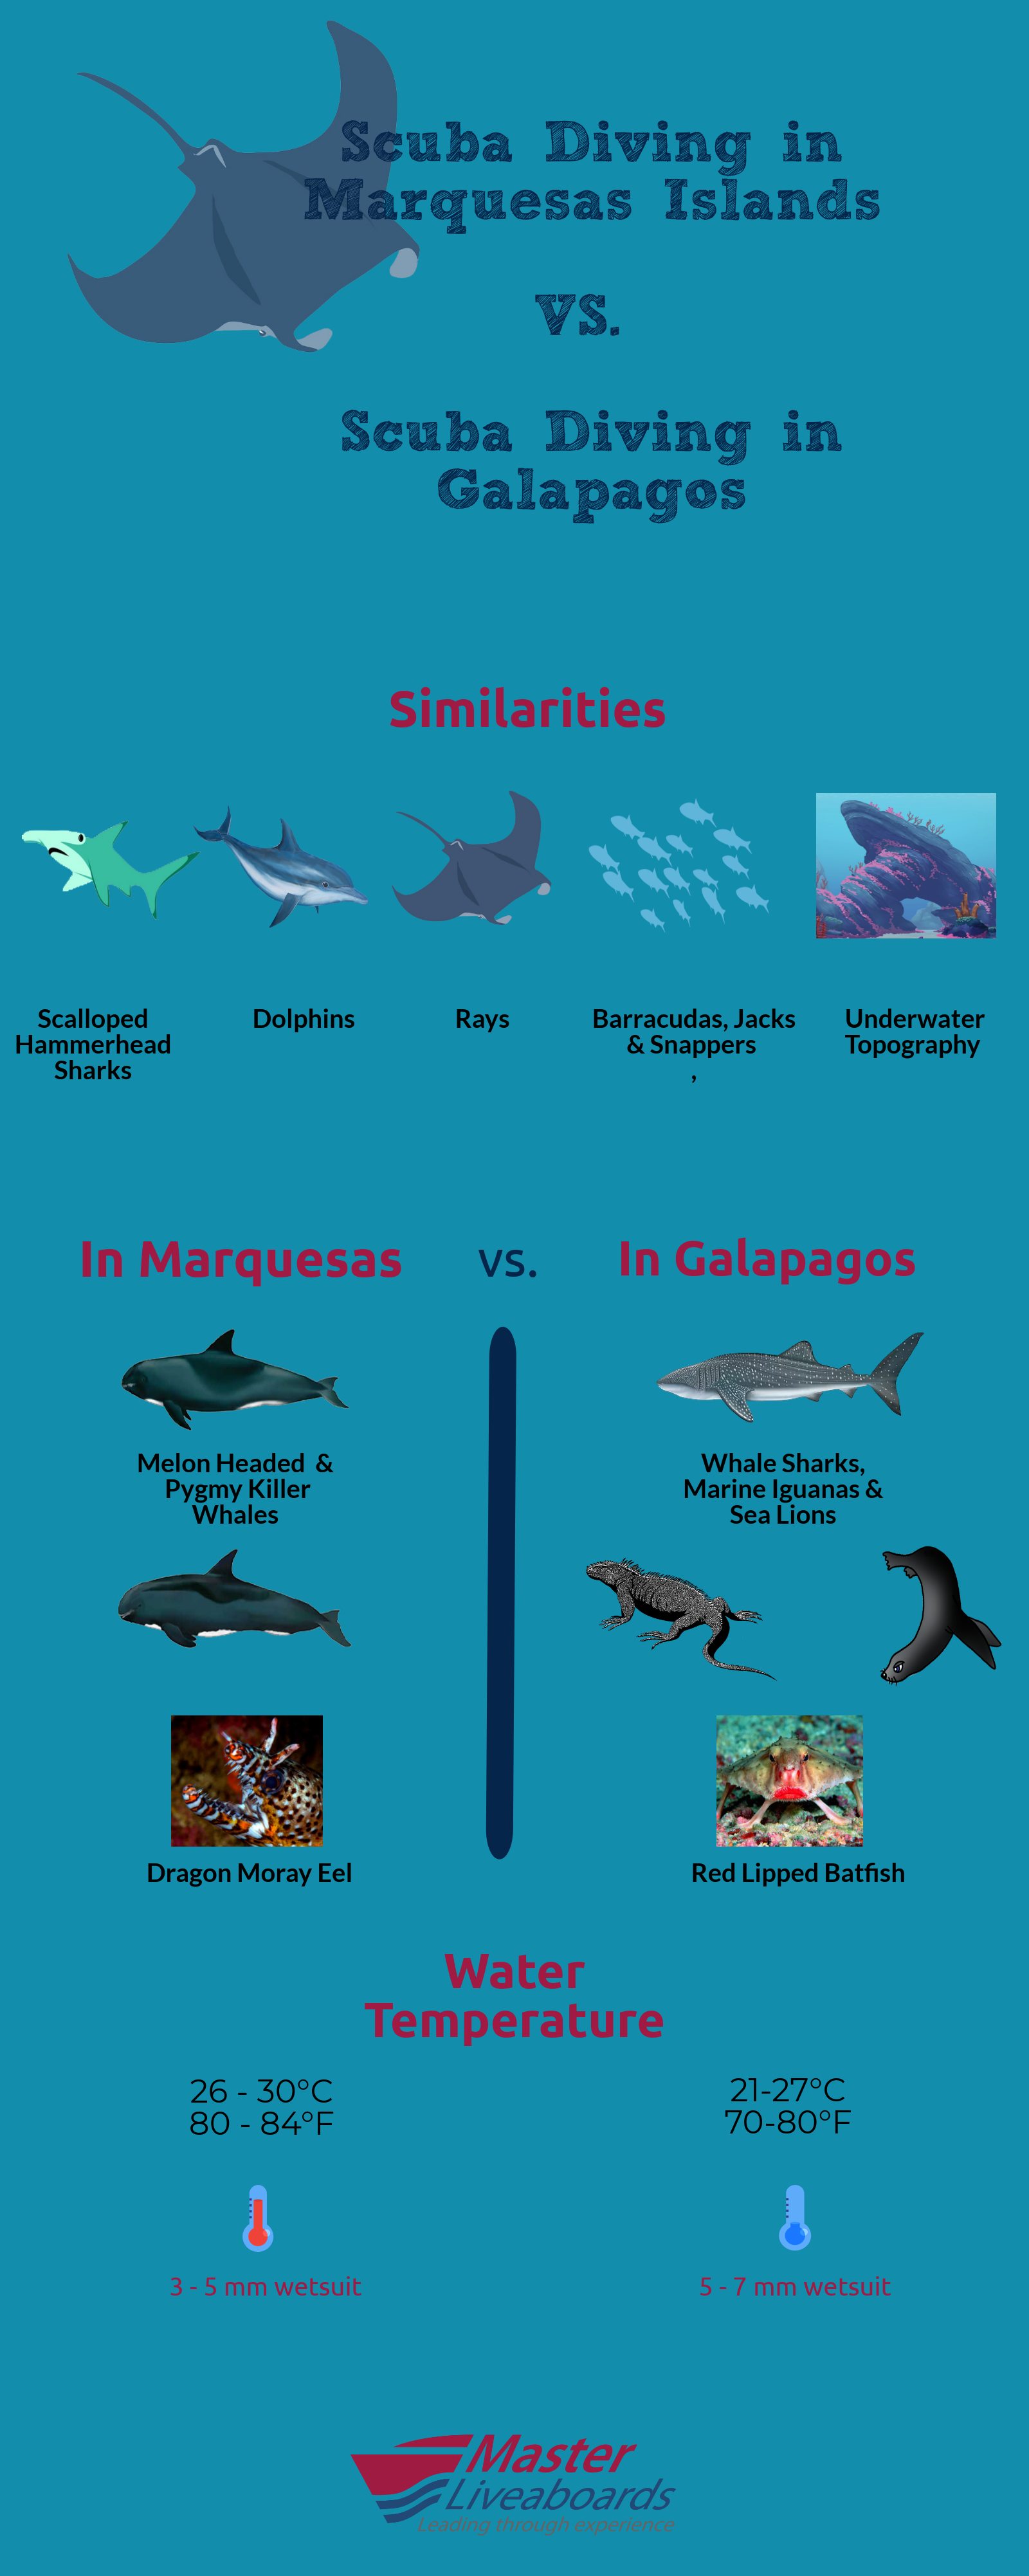 Differences and similarities between diving the Marquesas Islands and diving the Galapagos.